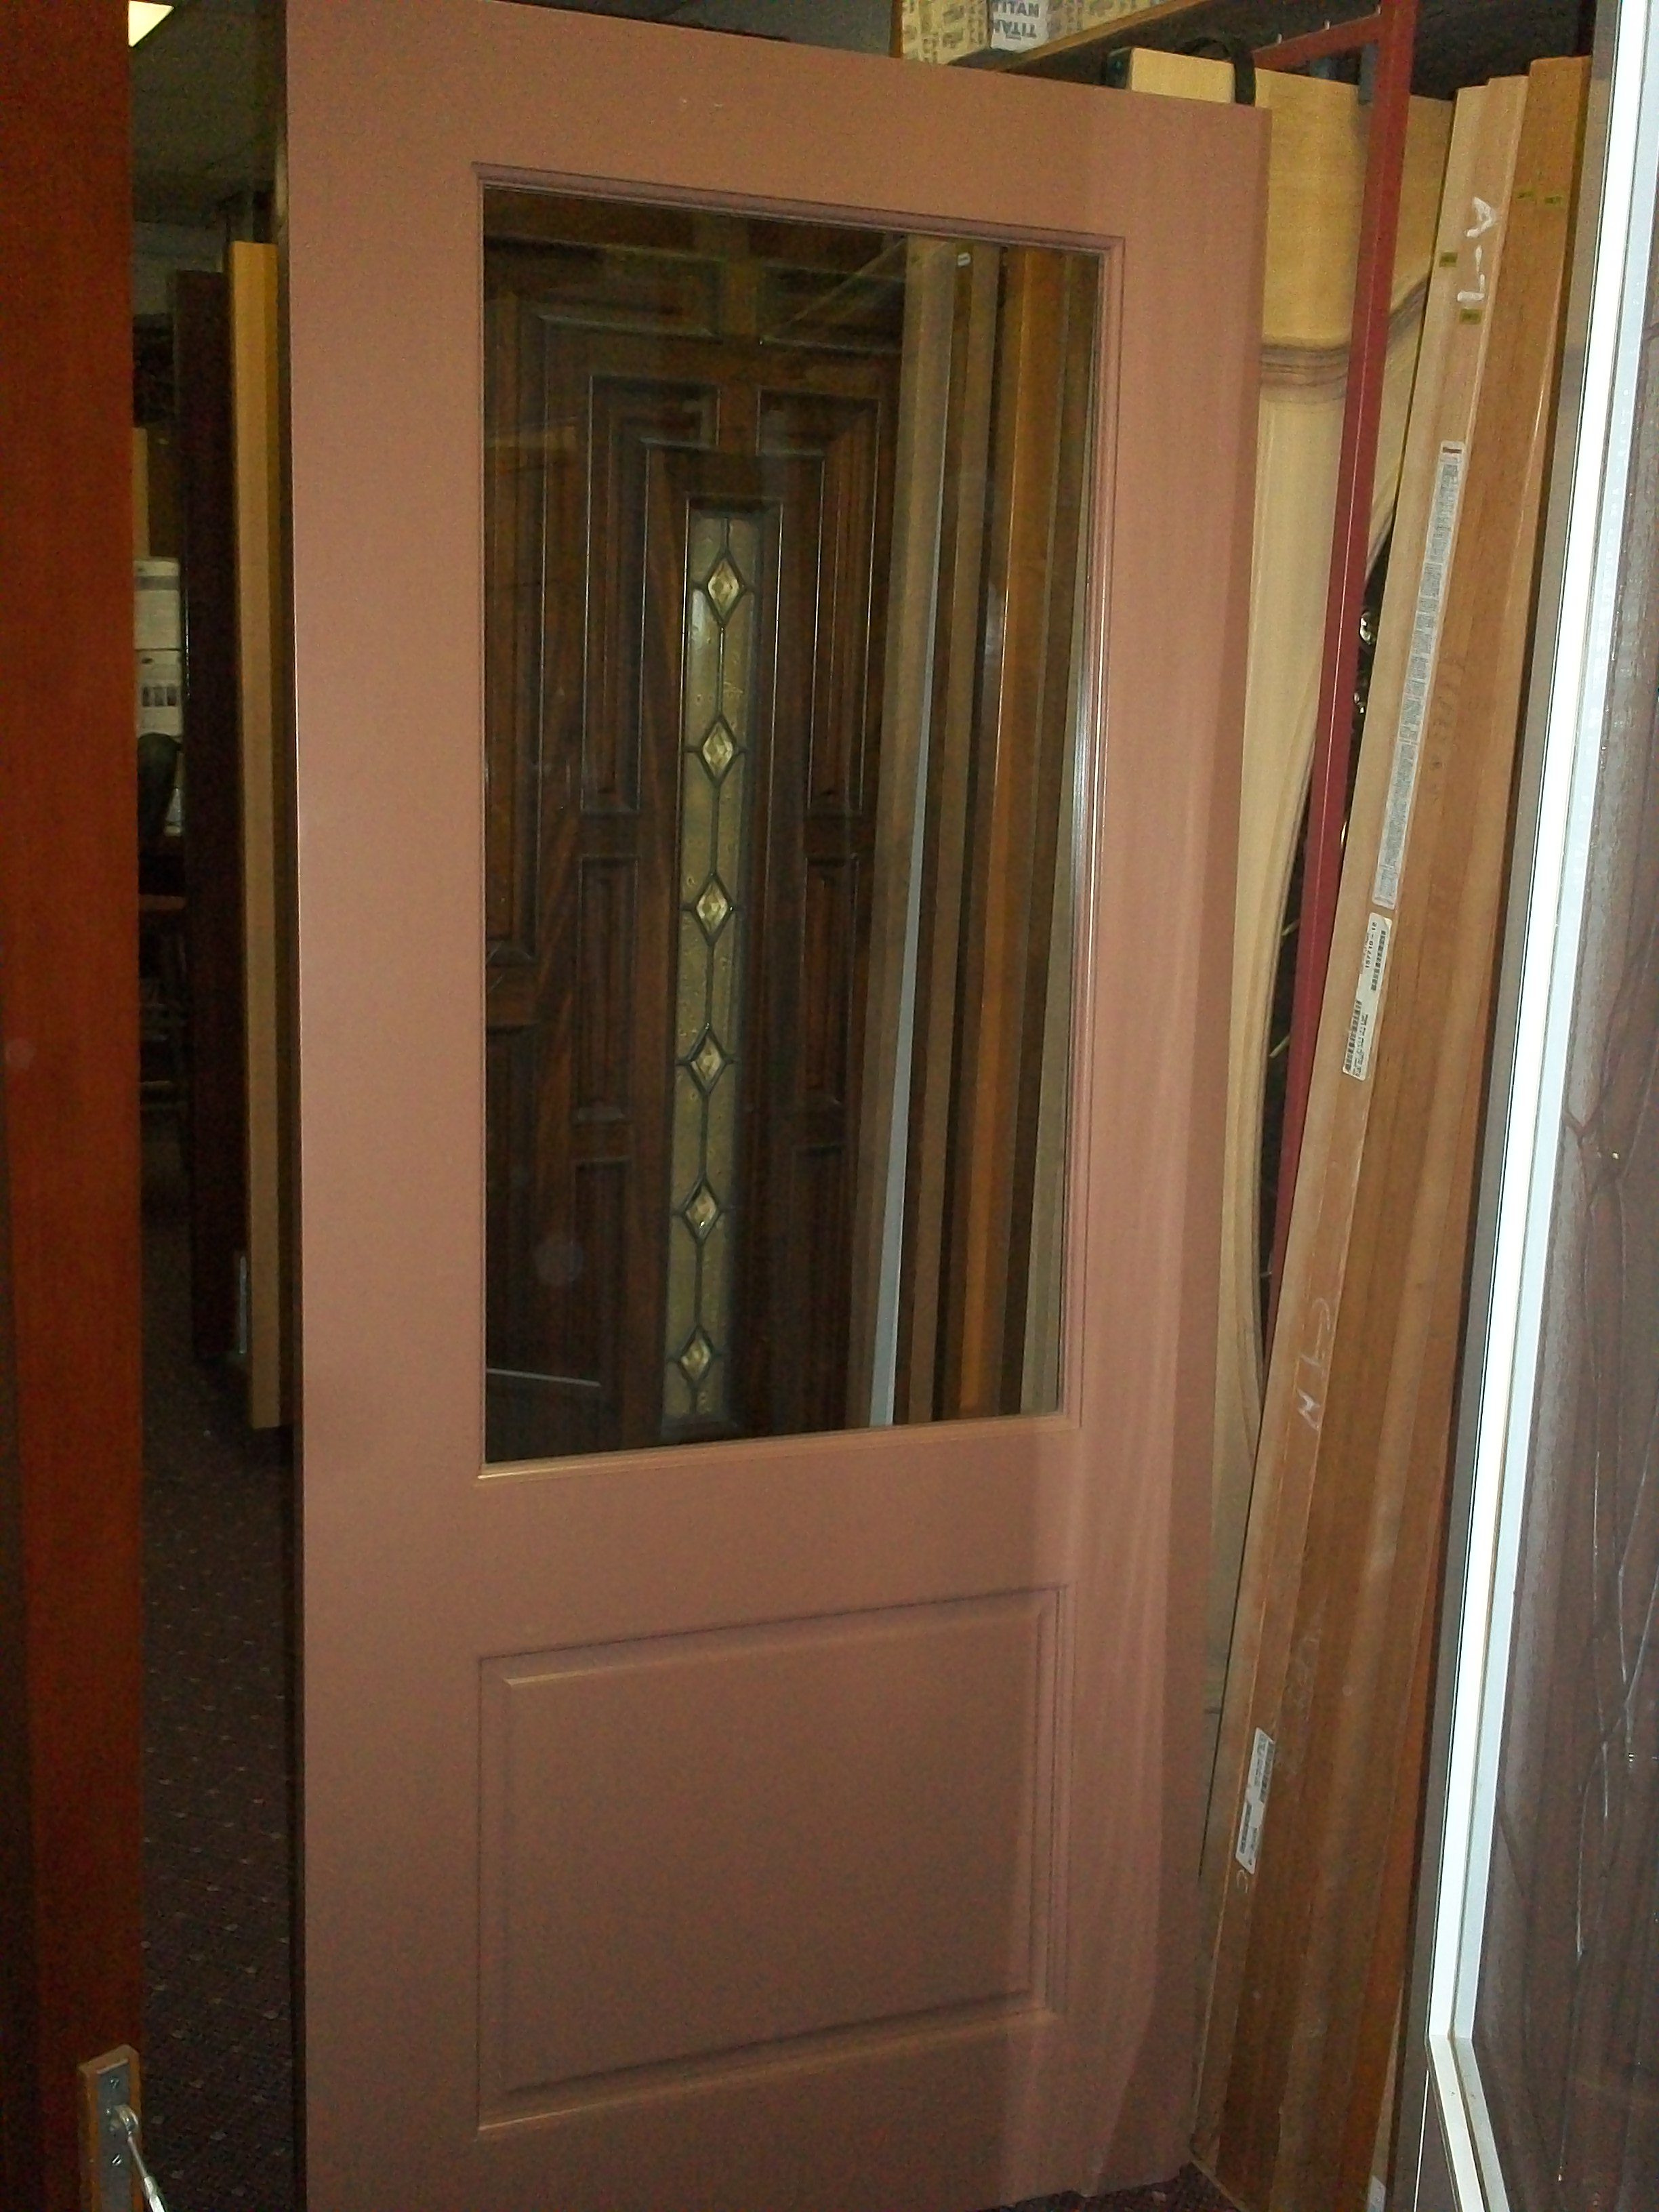 Single Glazed Clear Glass. Solid Poplar Door Painted Taupe. This Door Is Great For A School Or Office. This Is Just One Door We Have 10 Of Them! : this door - Pezcame.Com